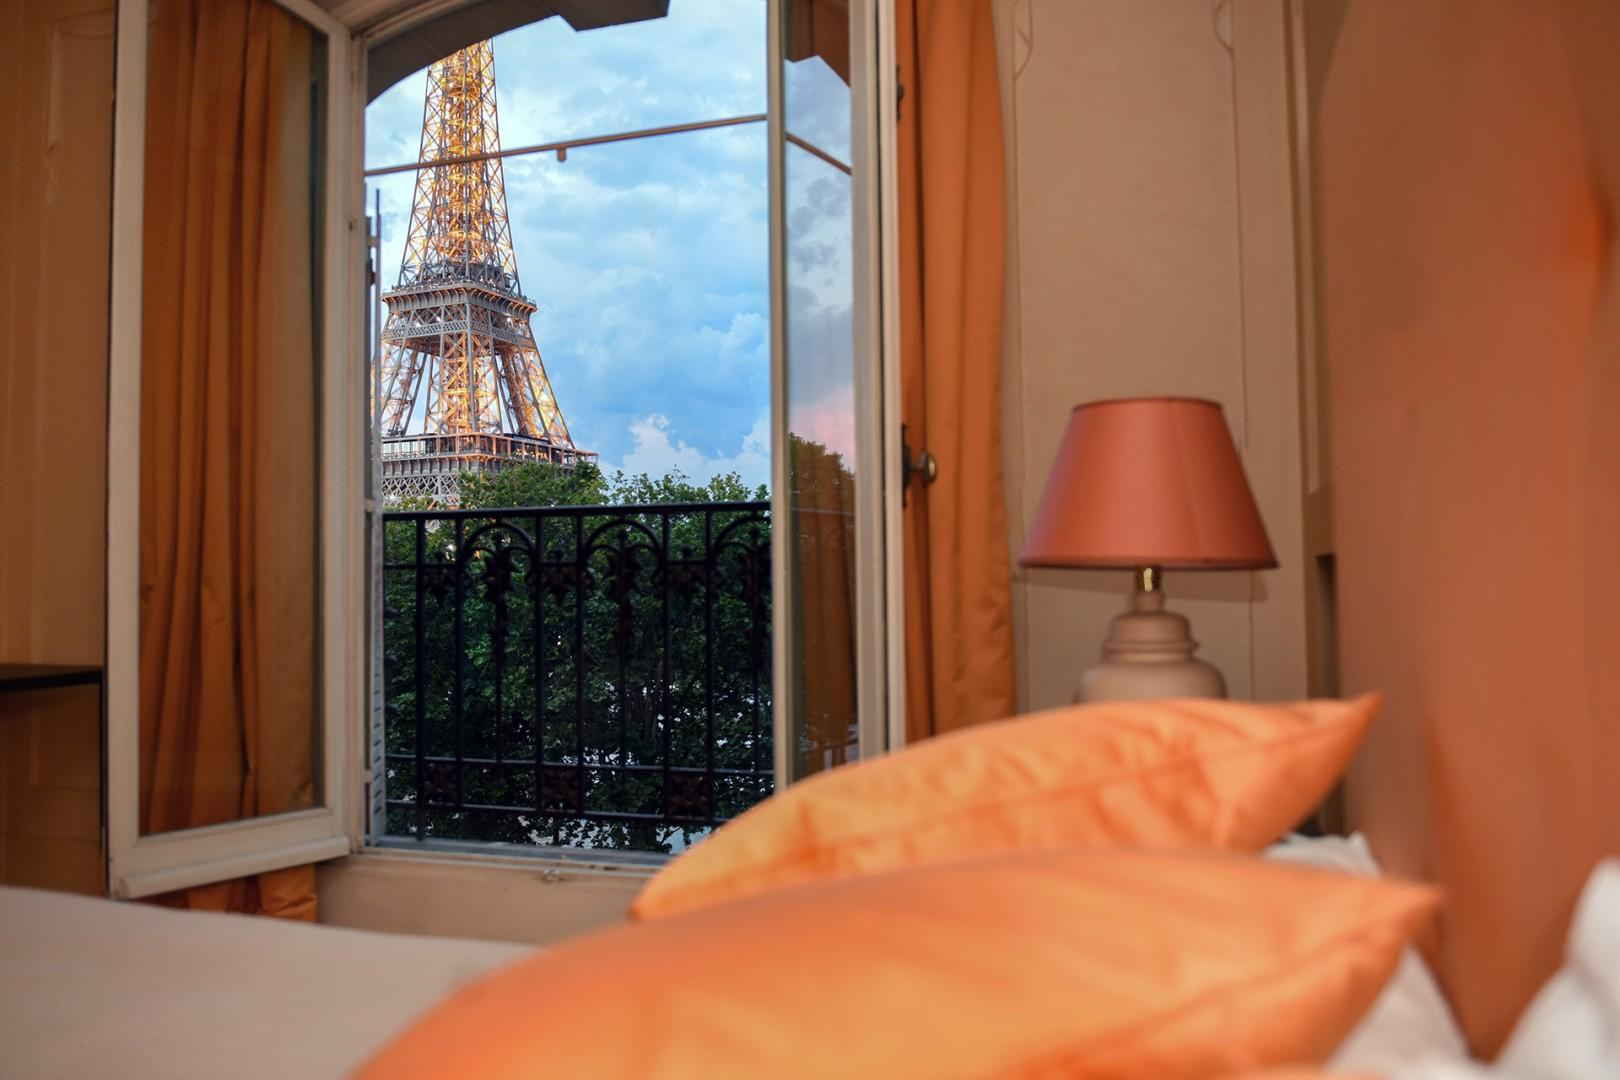 Drift off to sleep in the dreamy bedroom with Eiffel Tower views.